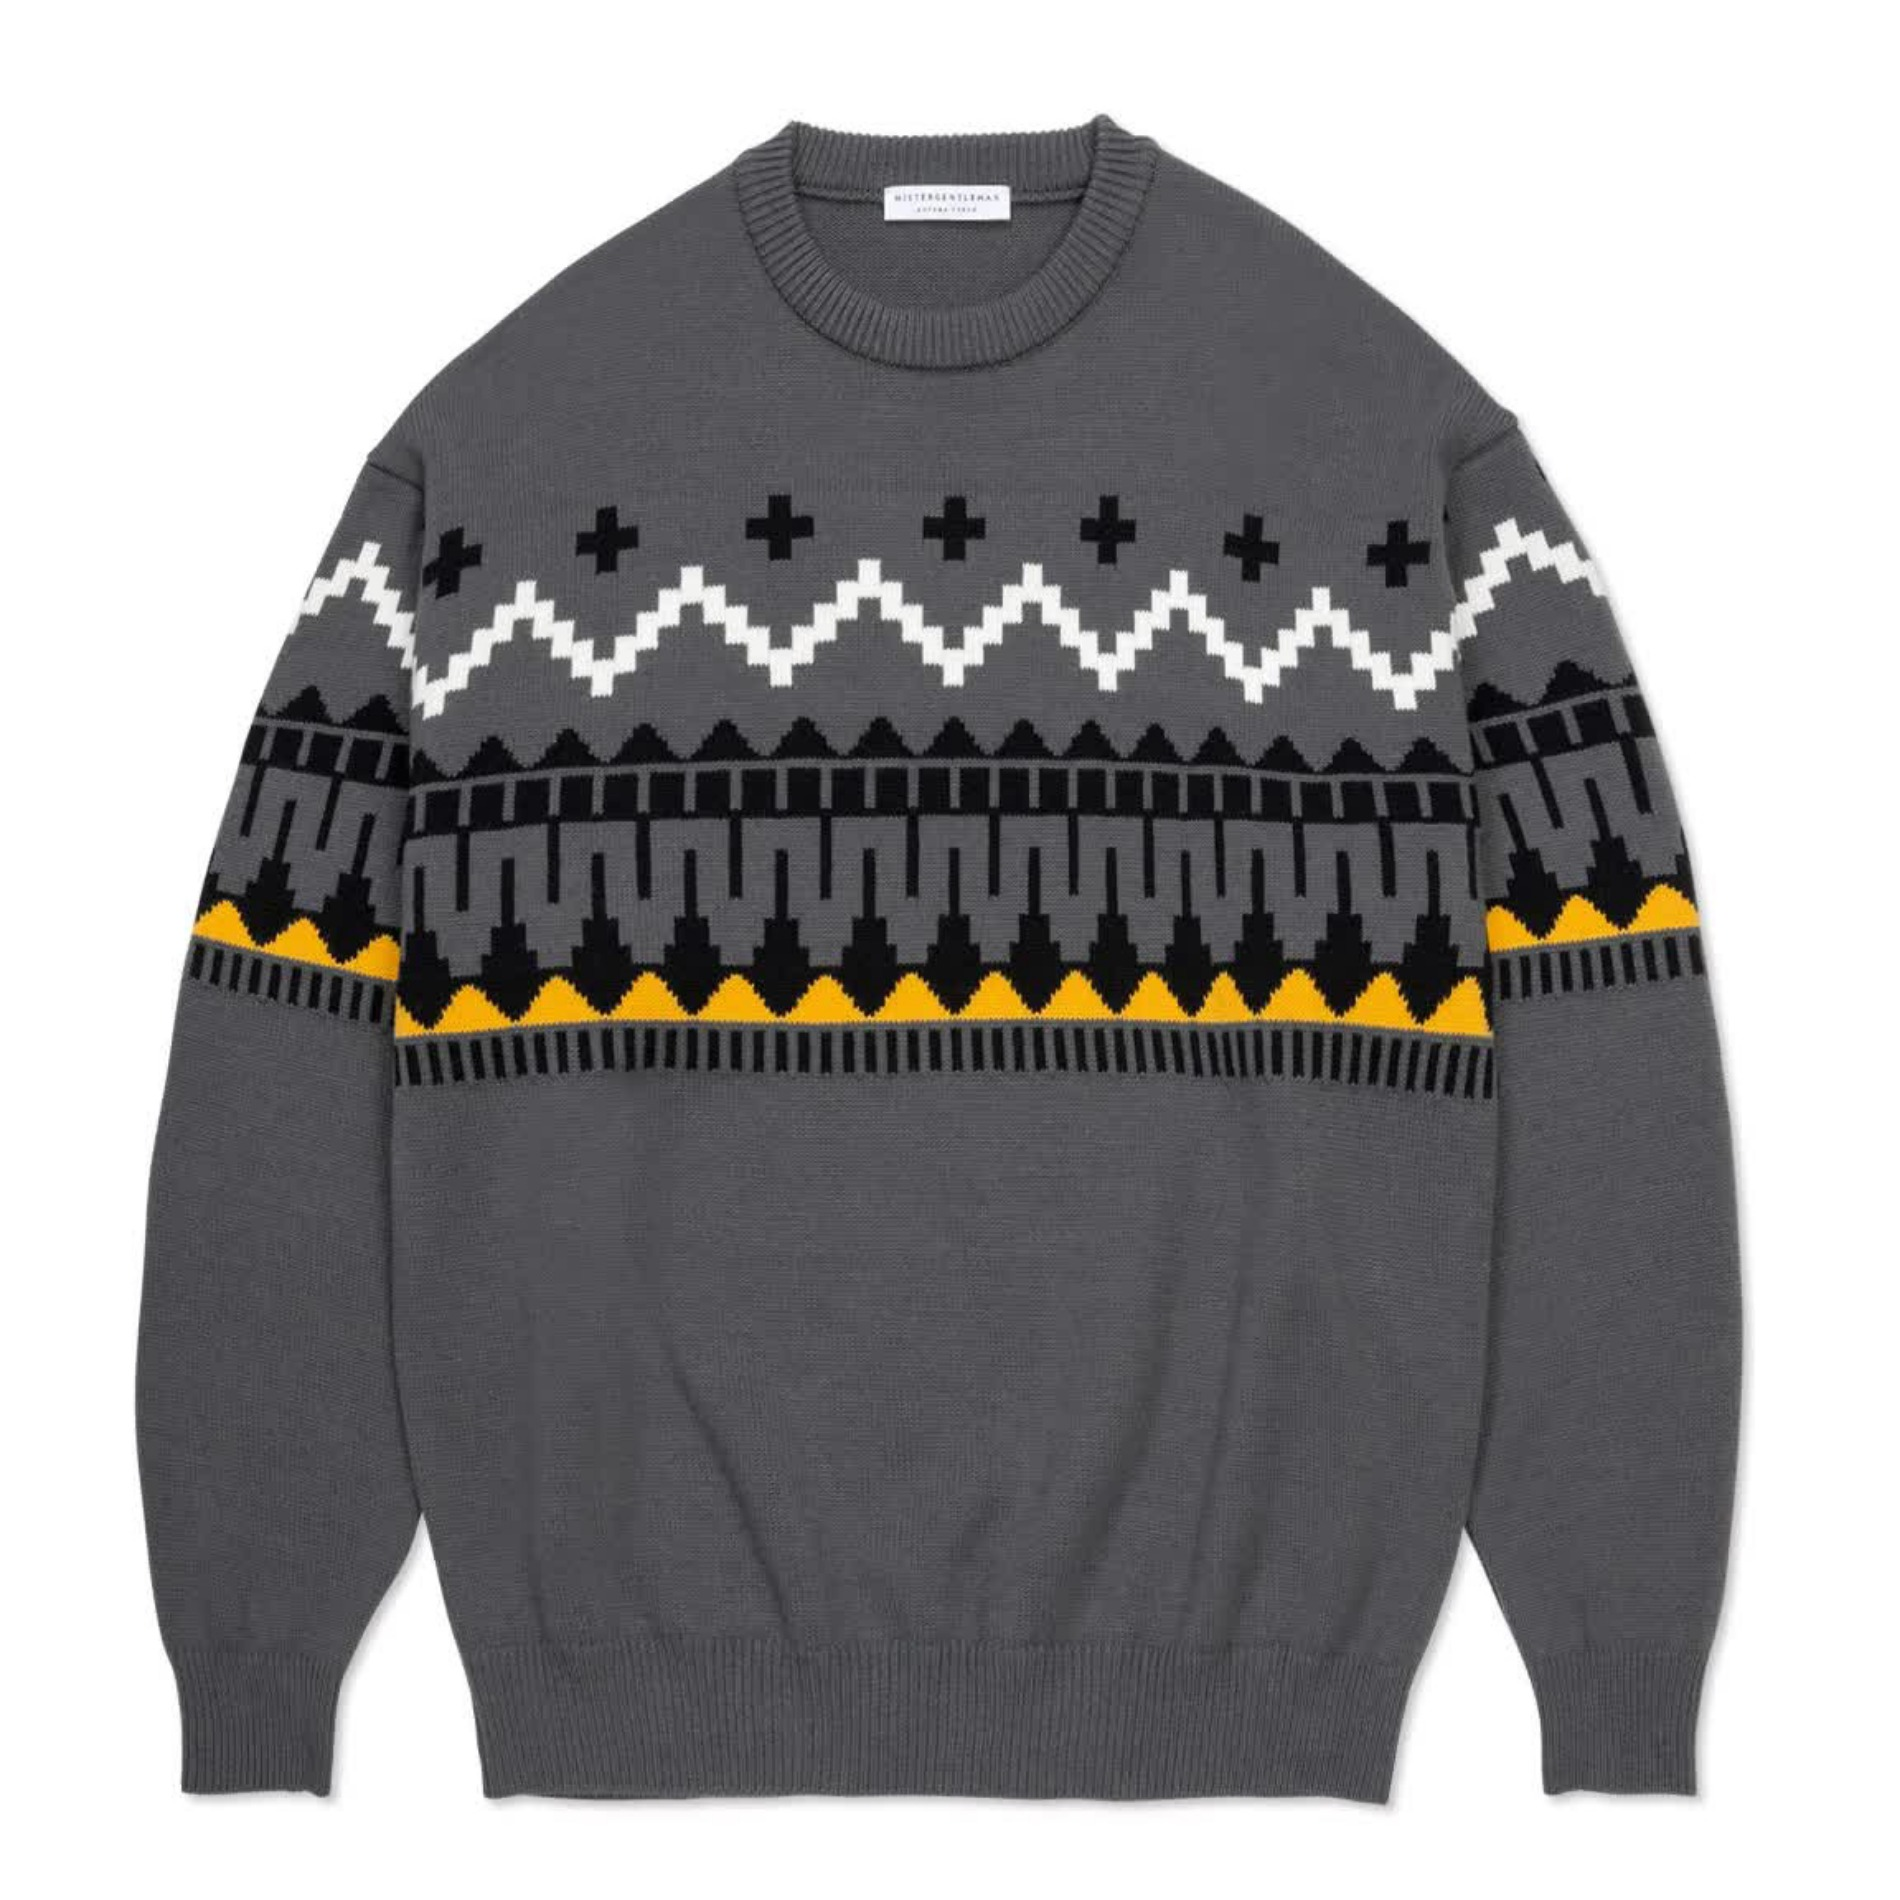 AW20 MISTER GENTLEMAN FAIR ISLE KNIT GREY